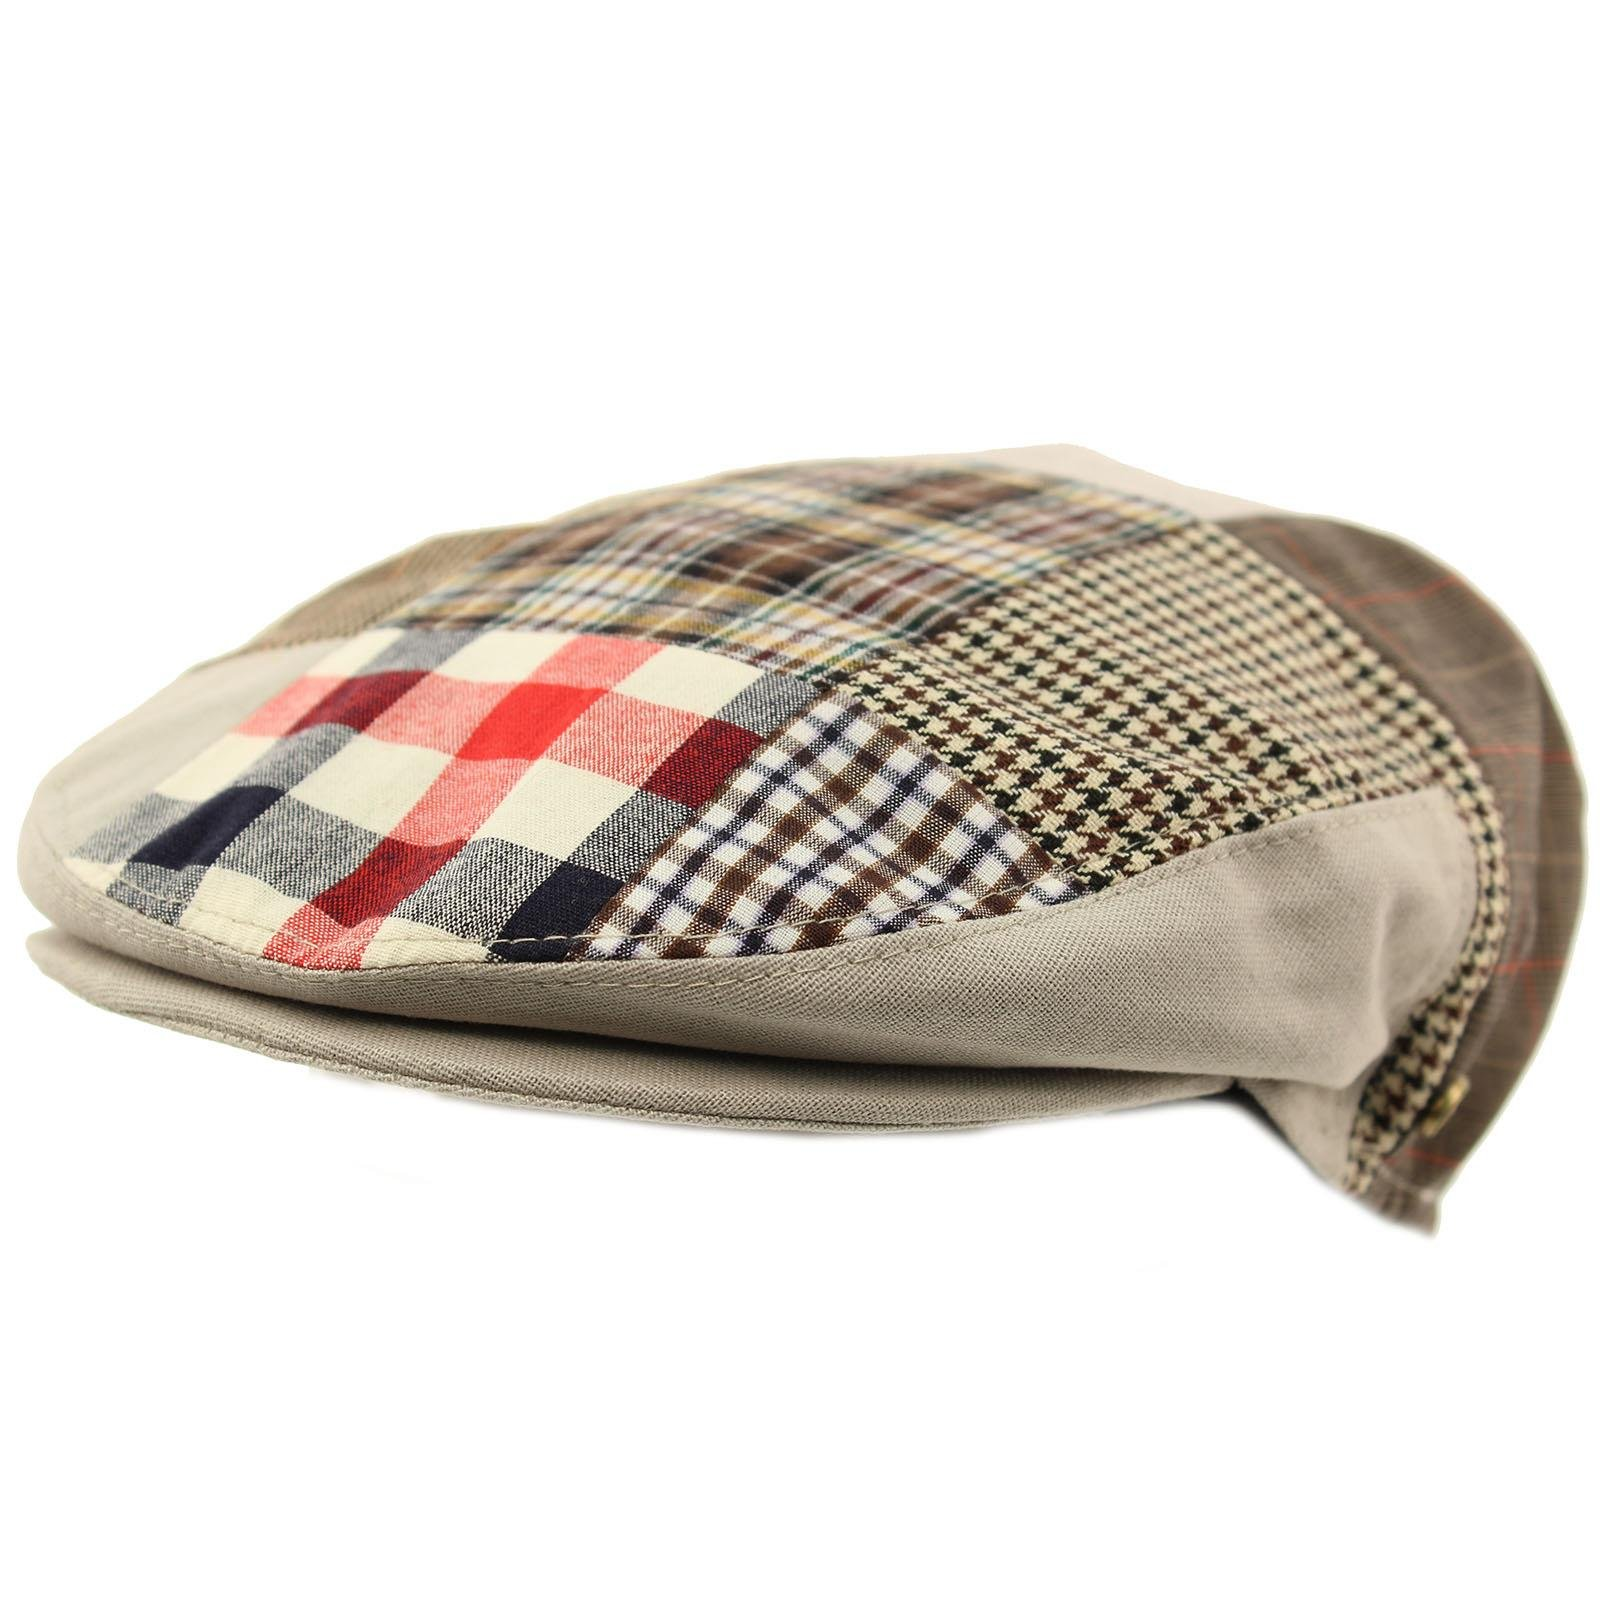 Men's Cotton 14 Patch Ivy Plaids Houndstooth Driver Cabby Flat Cap Hat Gray X-Large